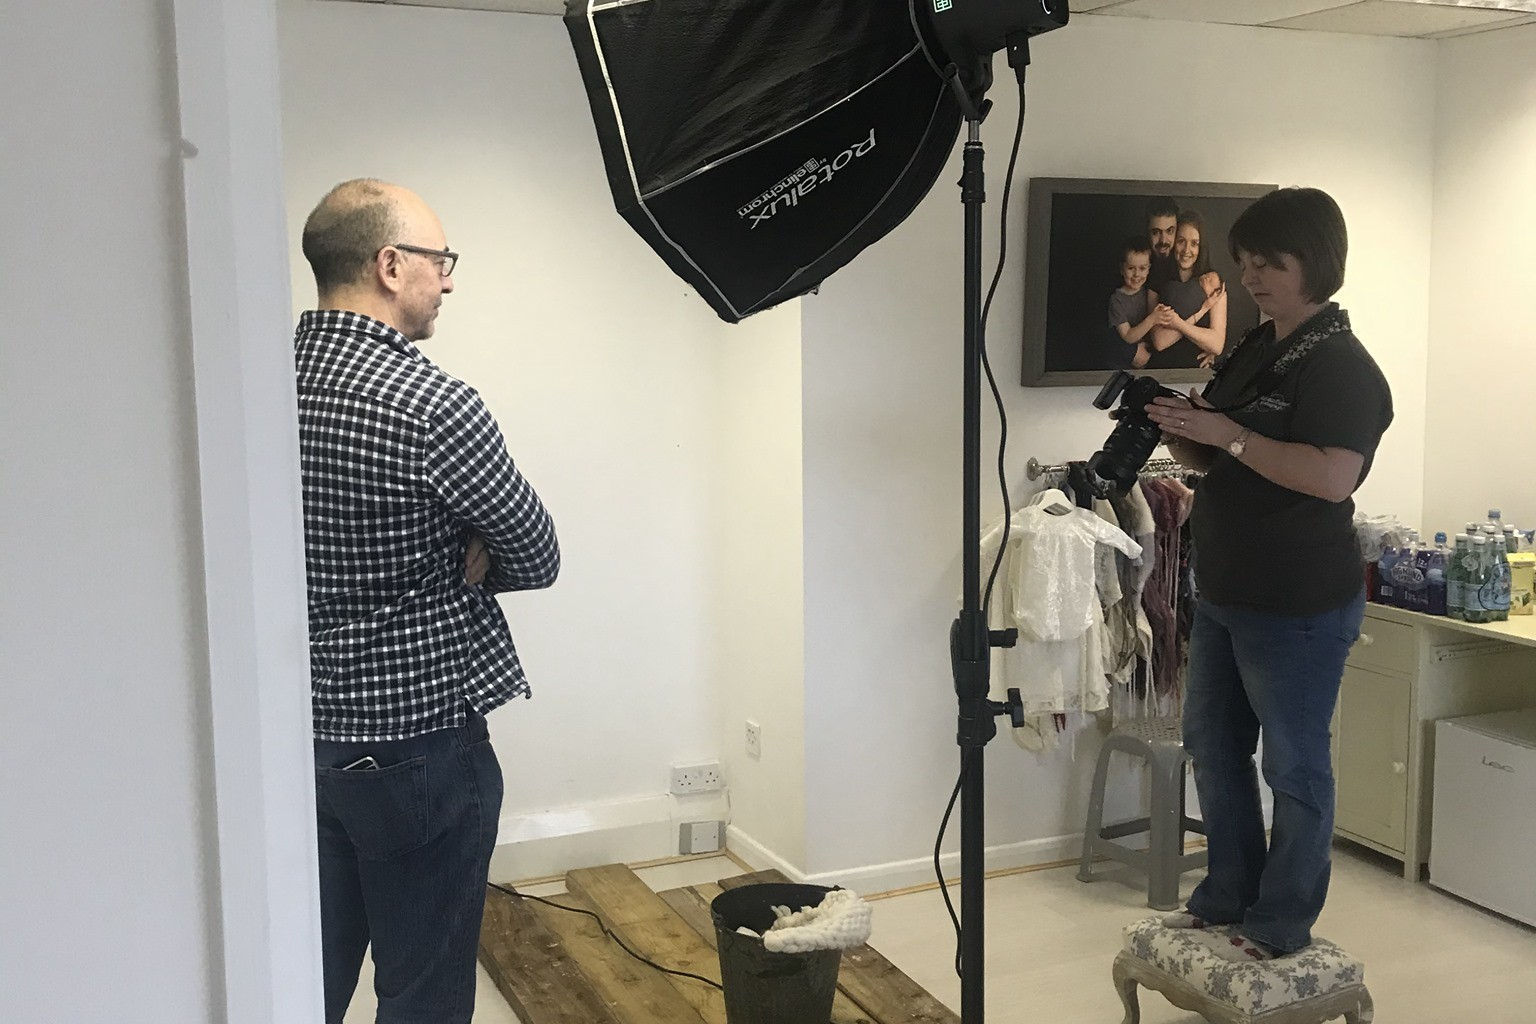 behind the scenes image of photography mentoring